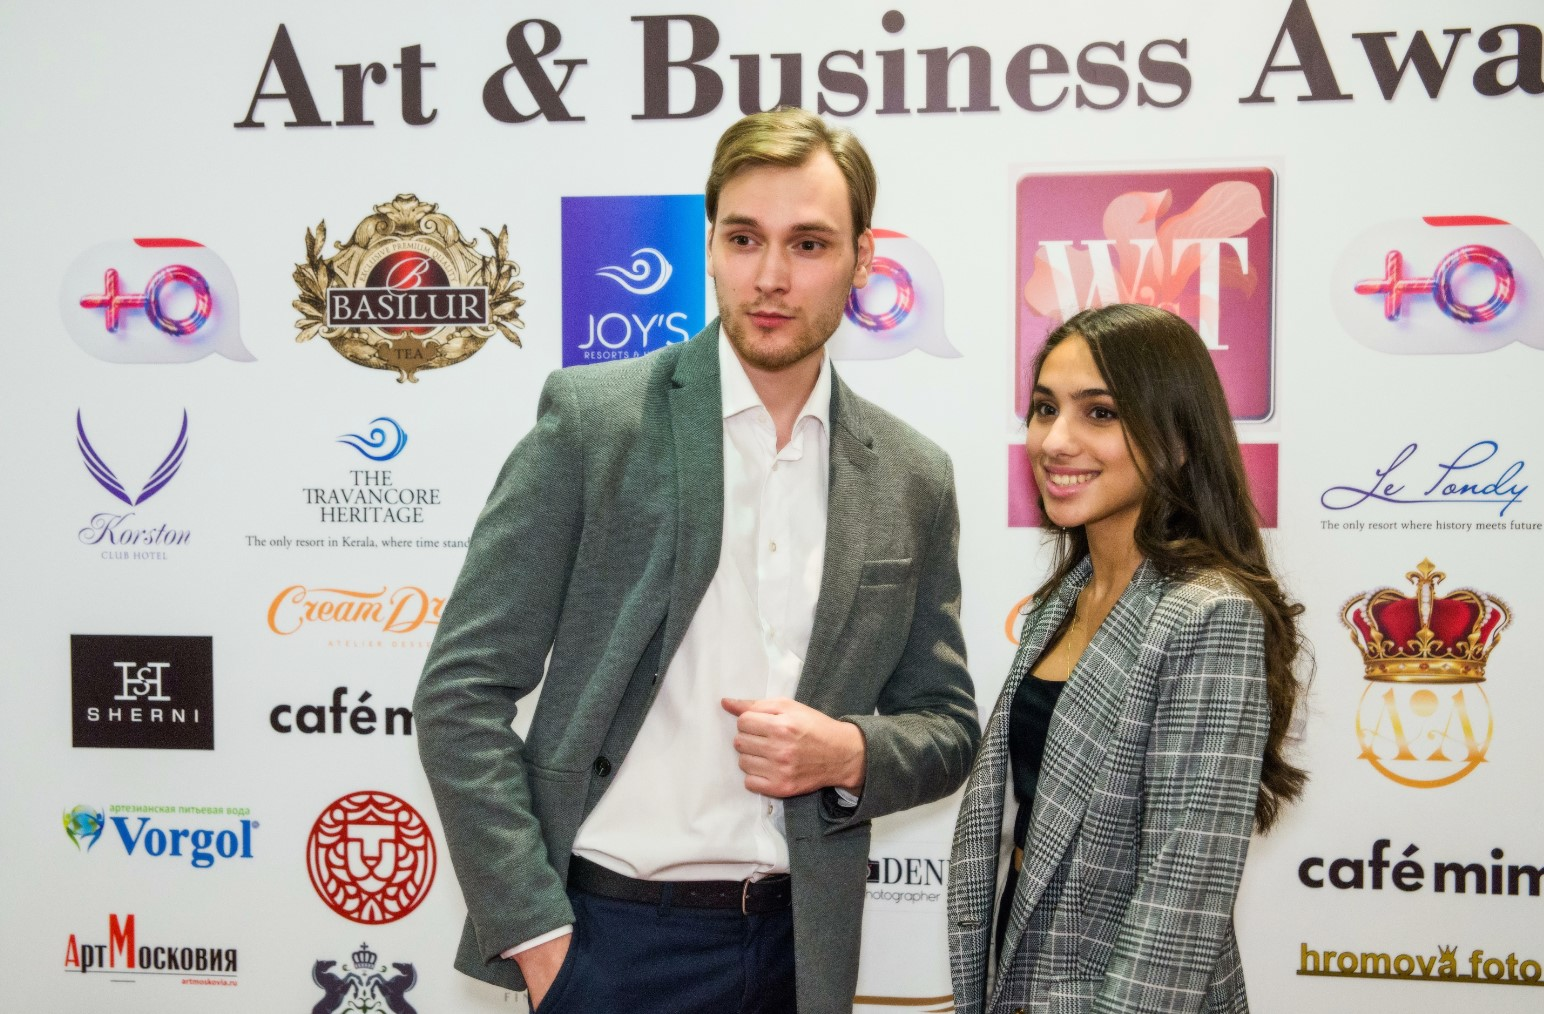 daniil-sushkov-ellora-tumadin-art-business-awards-2019-womens-time